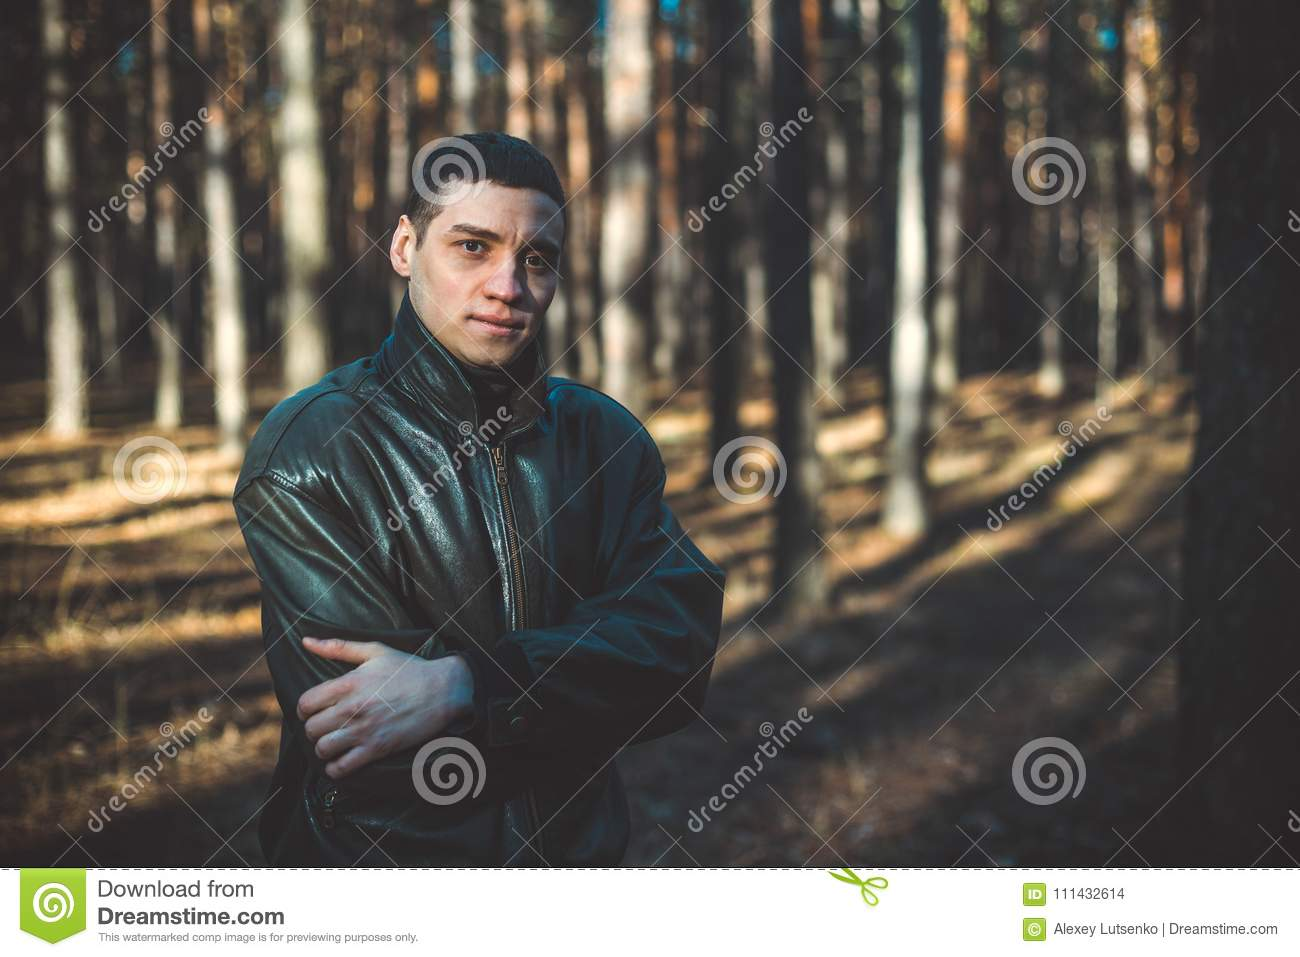 A Young Man Of Criminal Appearance In A Black Leather Jacket Stock